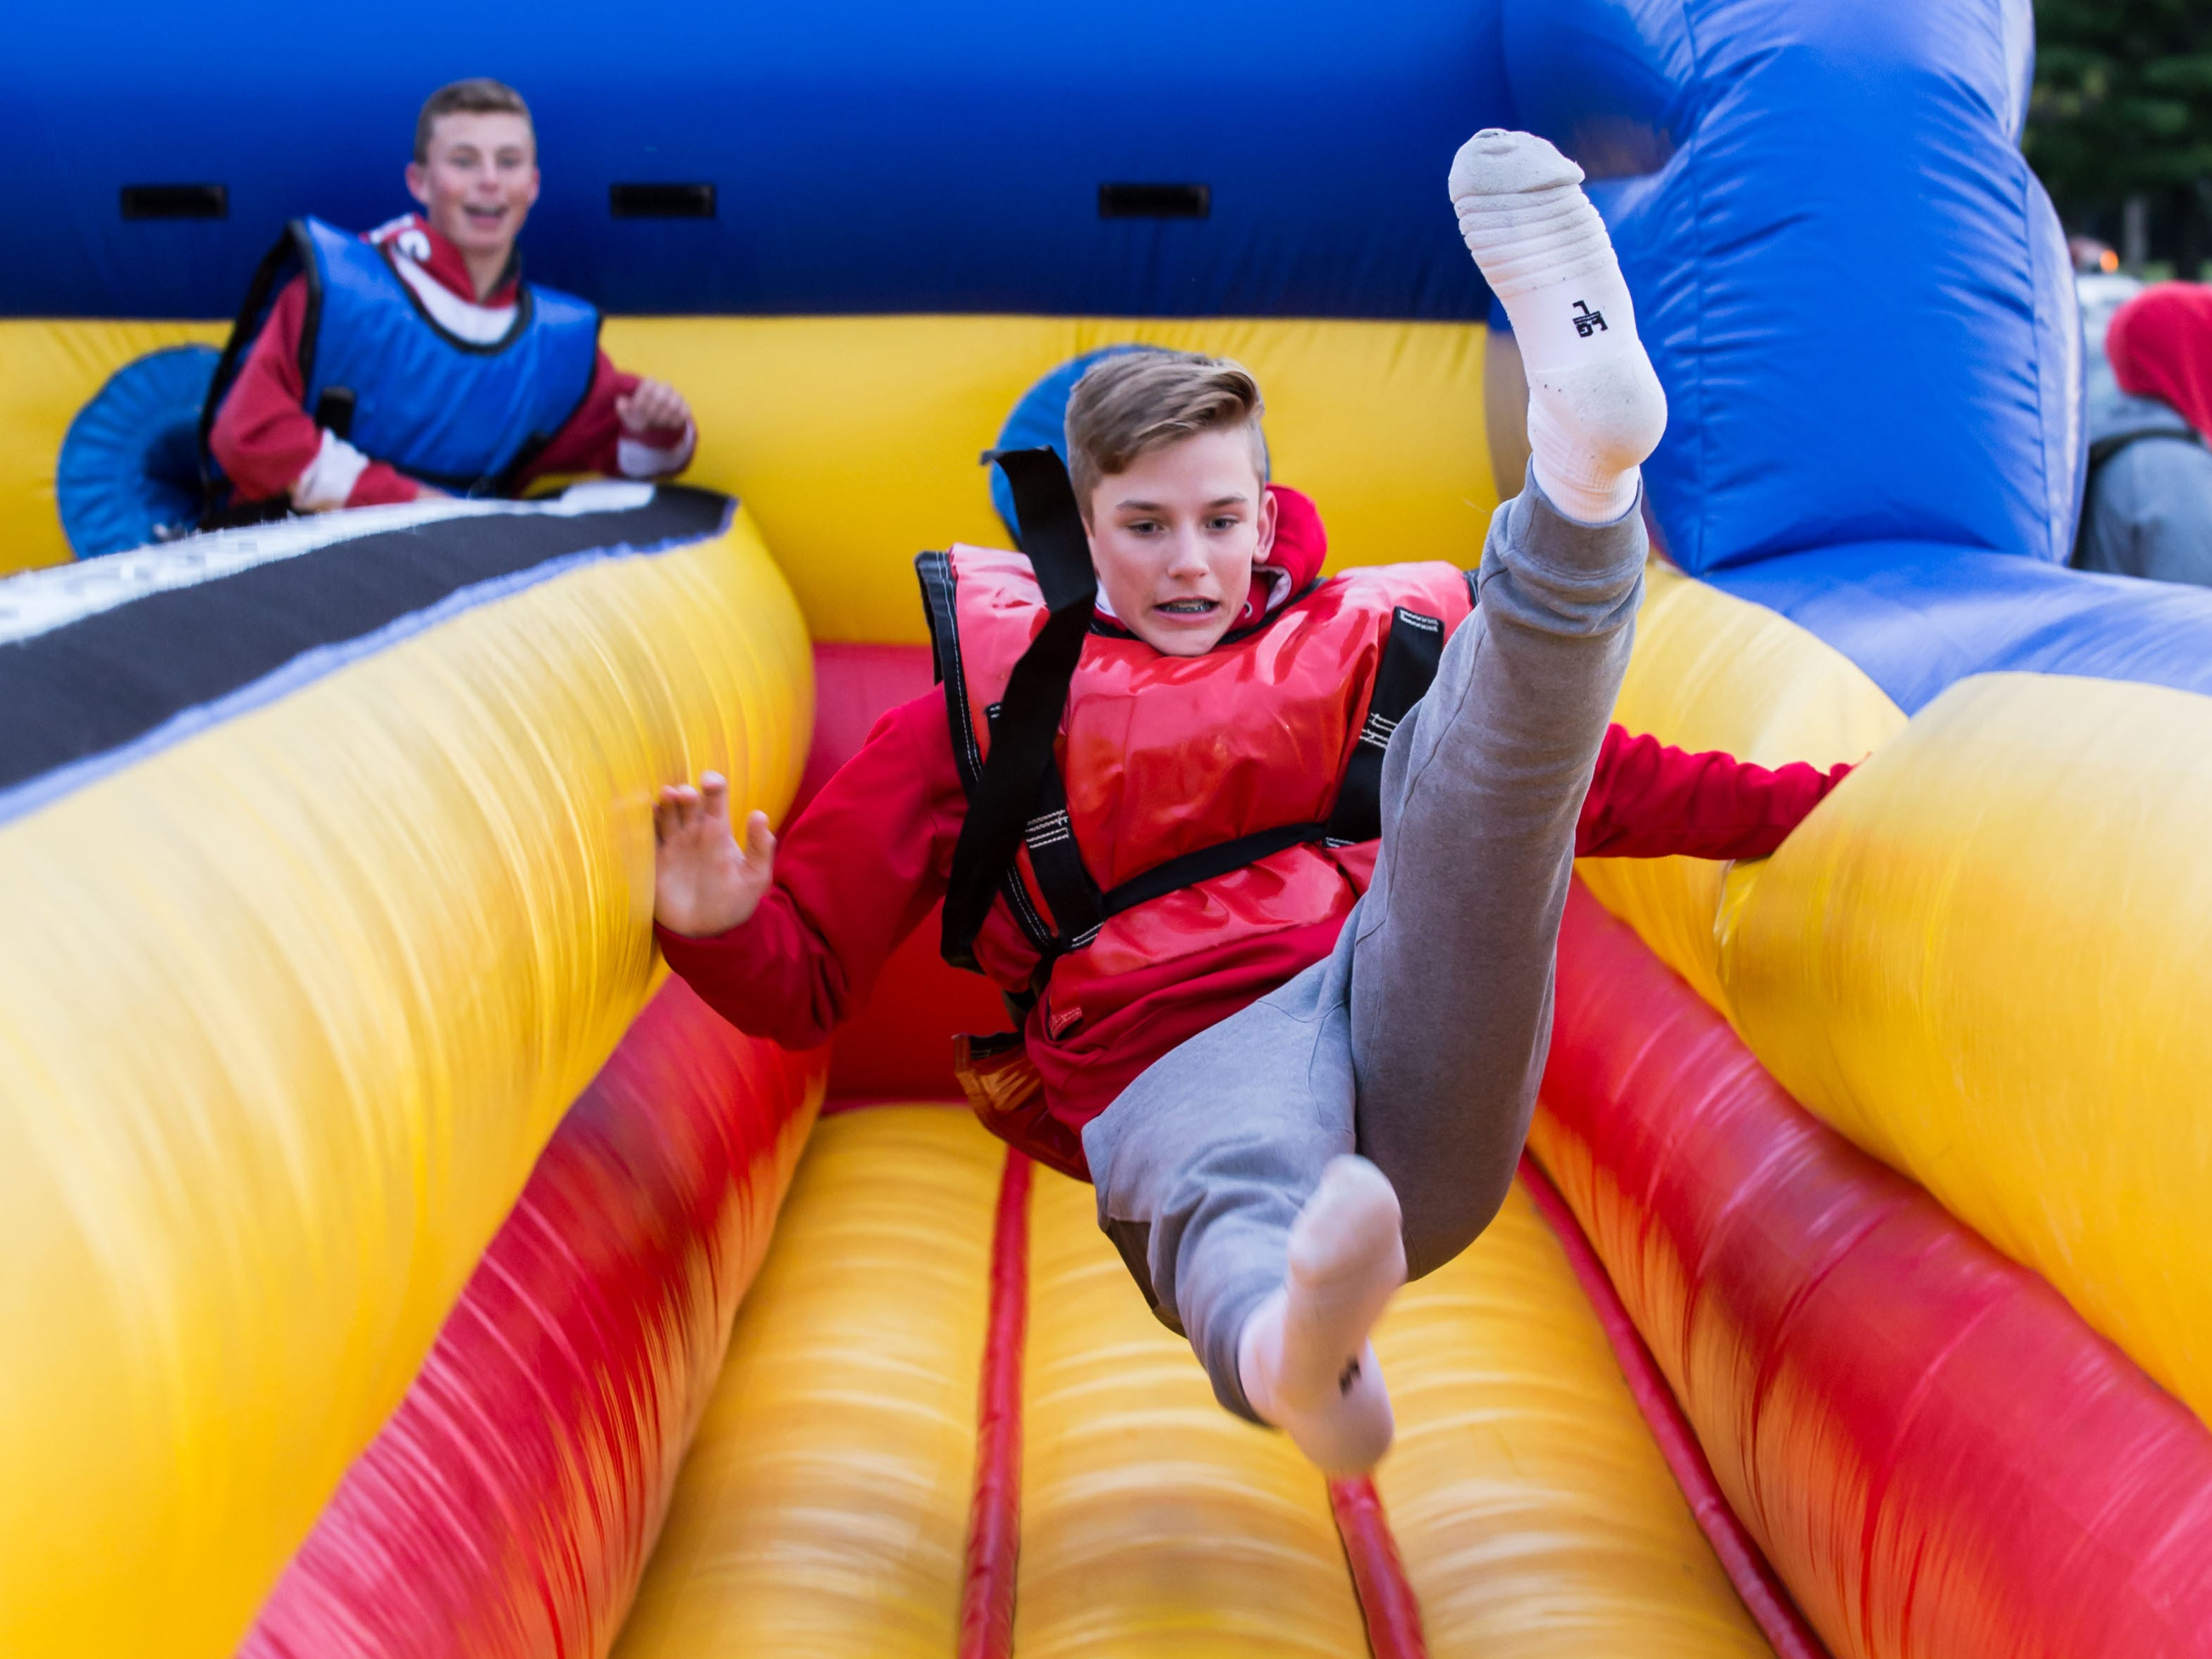 Freshman Josh Davies gets yanked backwards on the bungie game during the annual DECA Hawkfest event at Arrowhead High School in Hartland on Friday, Sept. 28, 2018. The event, which is free to attend, raises money for local charities via paid attractions, games, food and more.